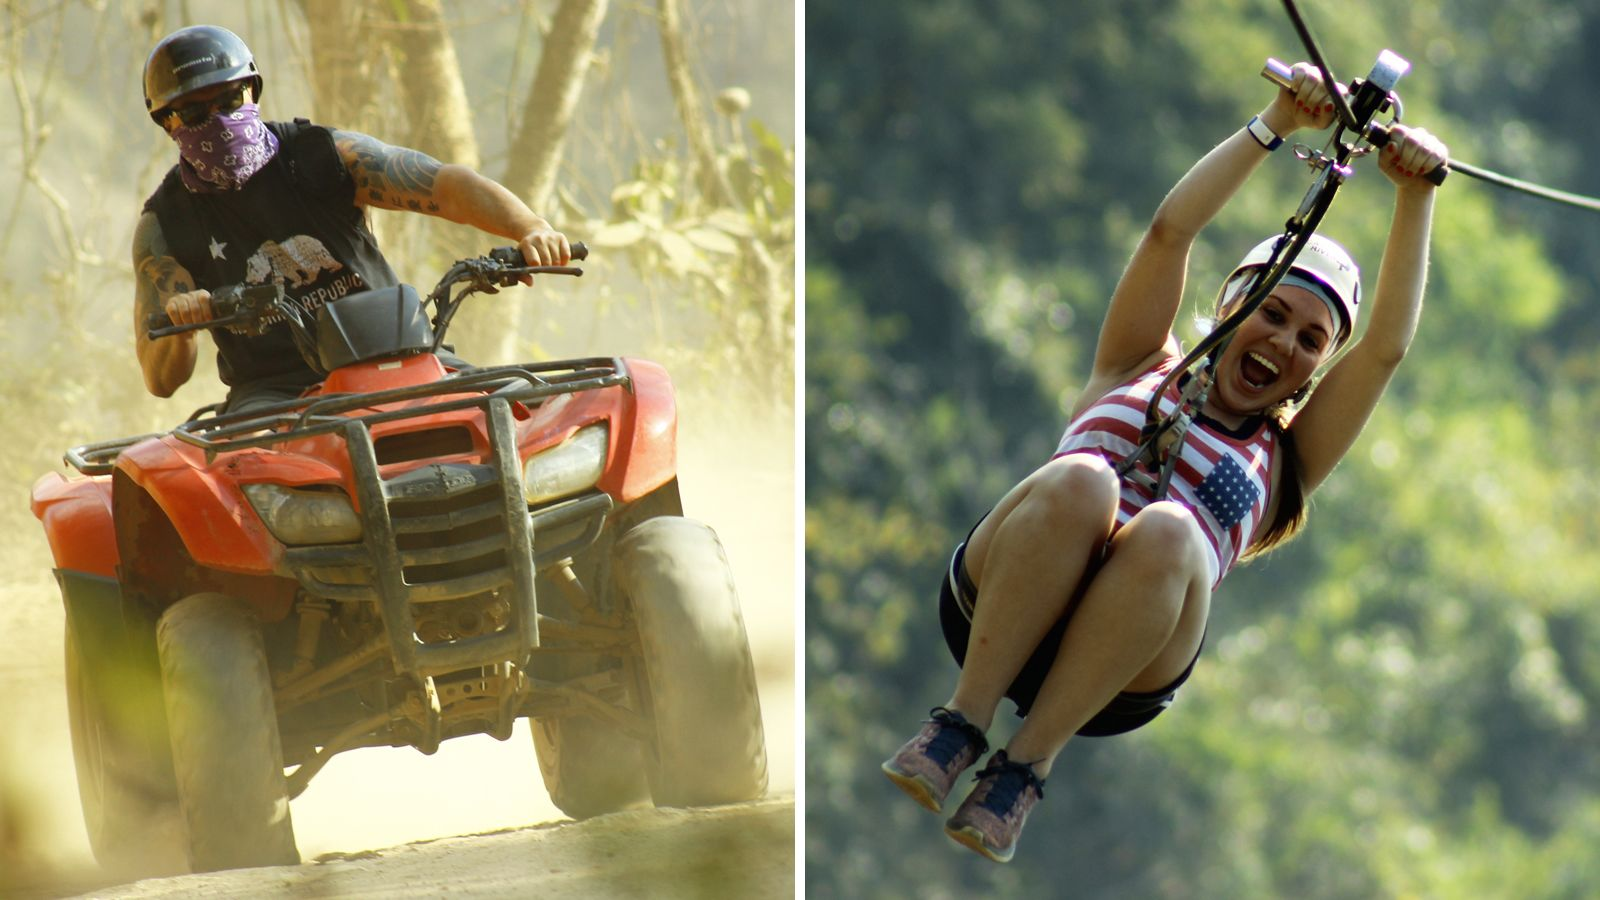 Combo Tour: ATV Ride & Zipline Canopy Adventure